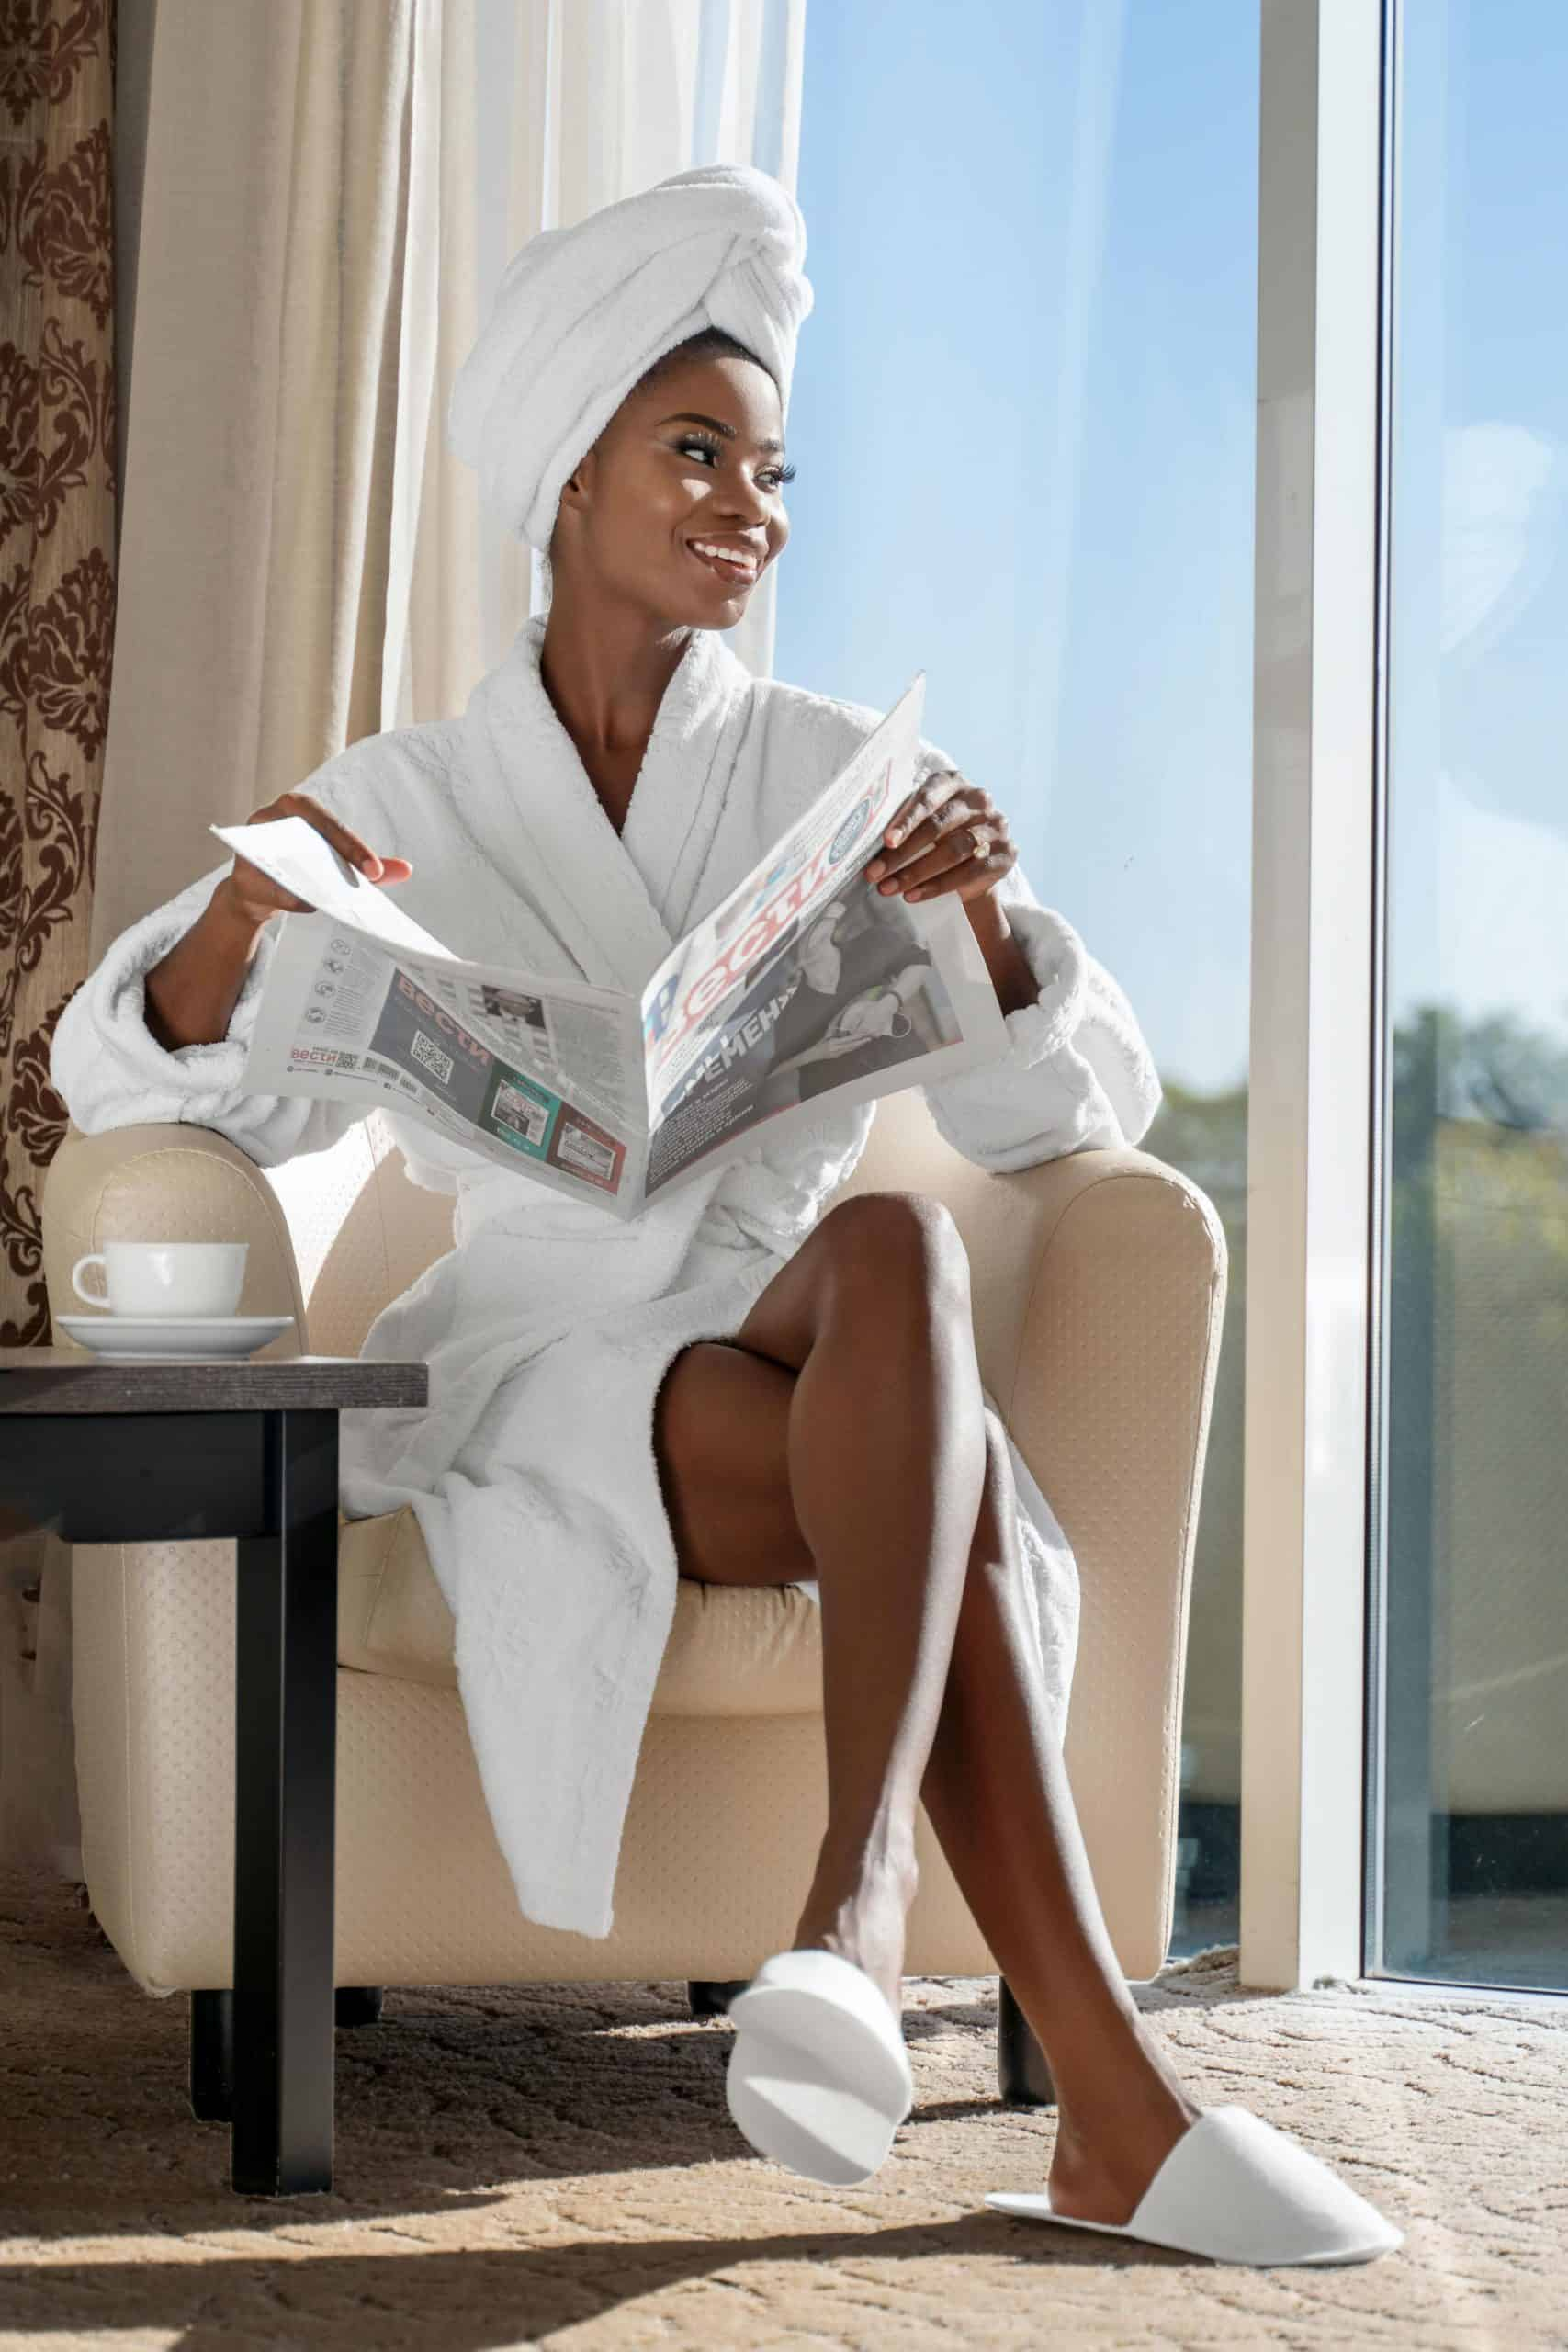 an image of a black woman sitting in a chair with a newspaper having wash day